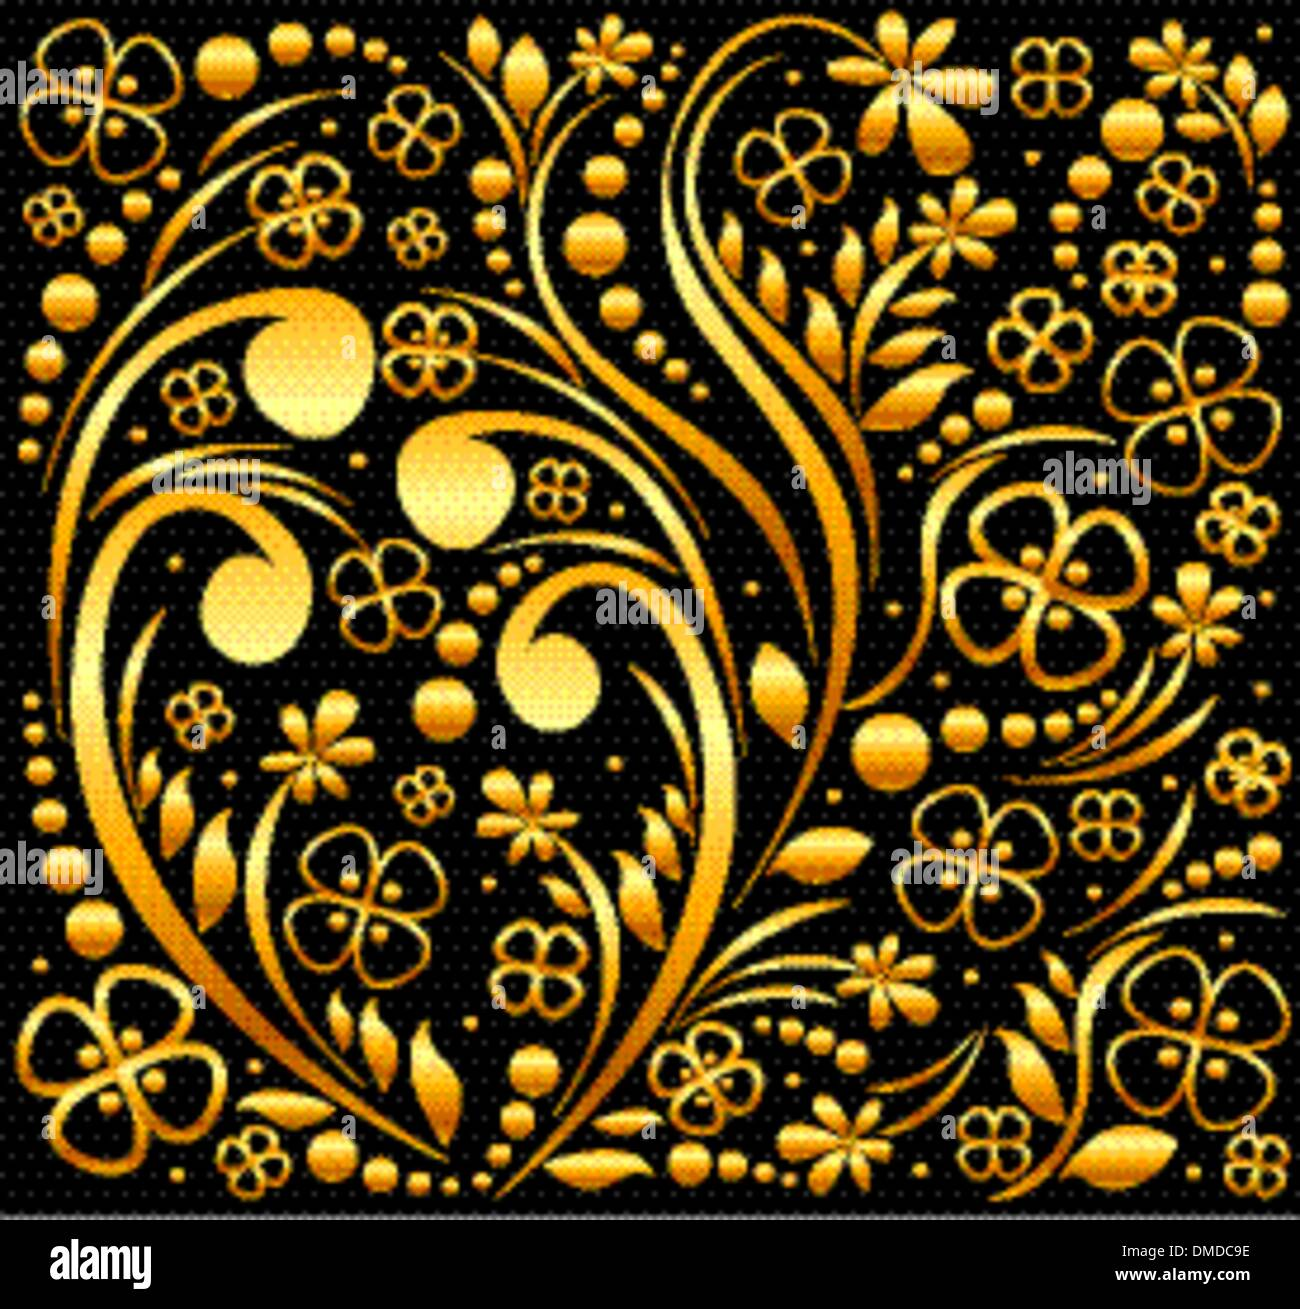 Vector Black Gold Floral Background Stock Photos Vector Black